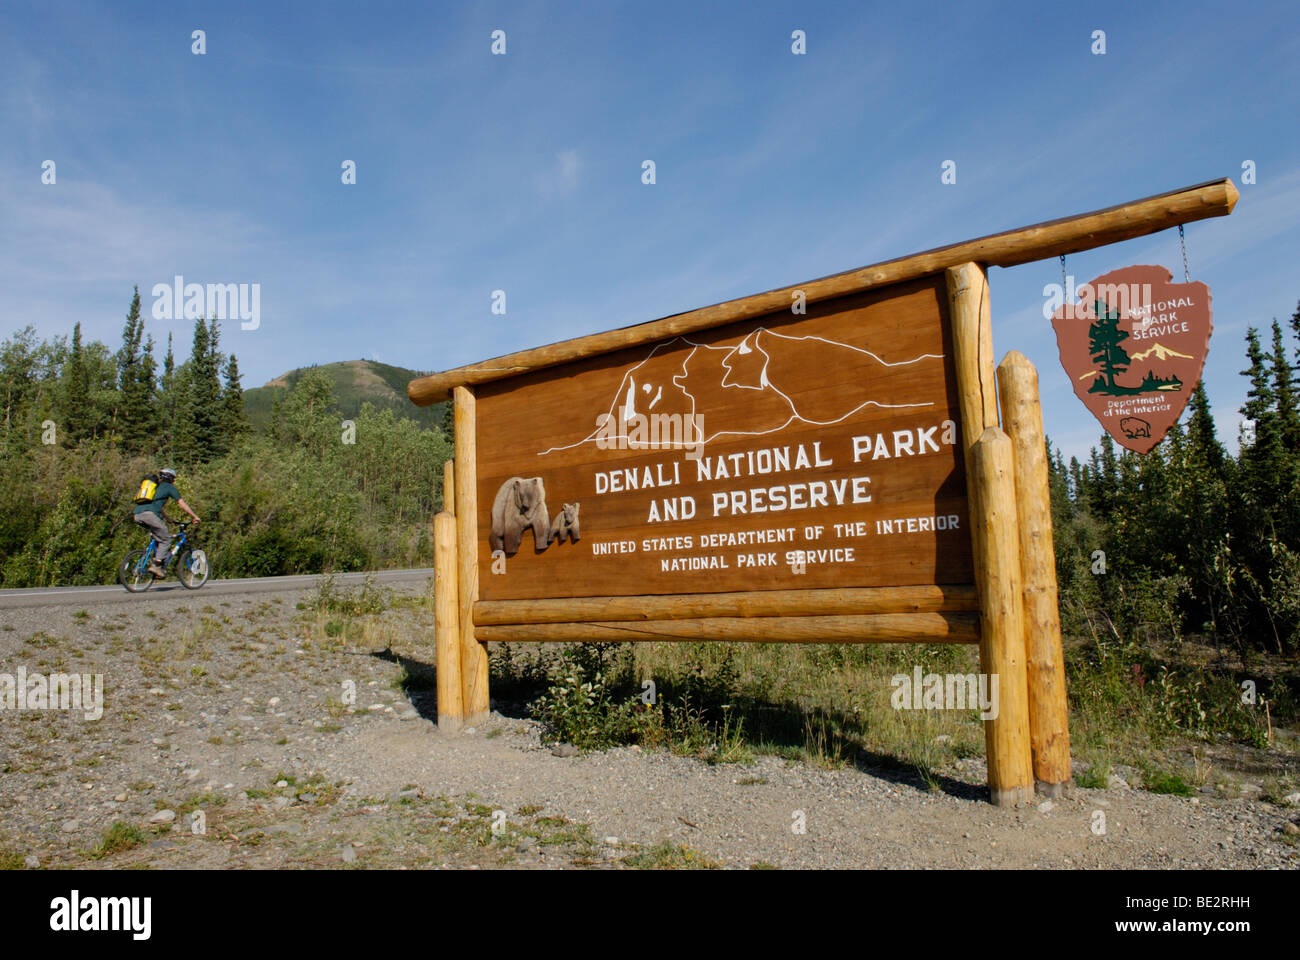 Denali National Park entrance sign with cyclist - Stock Image